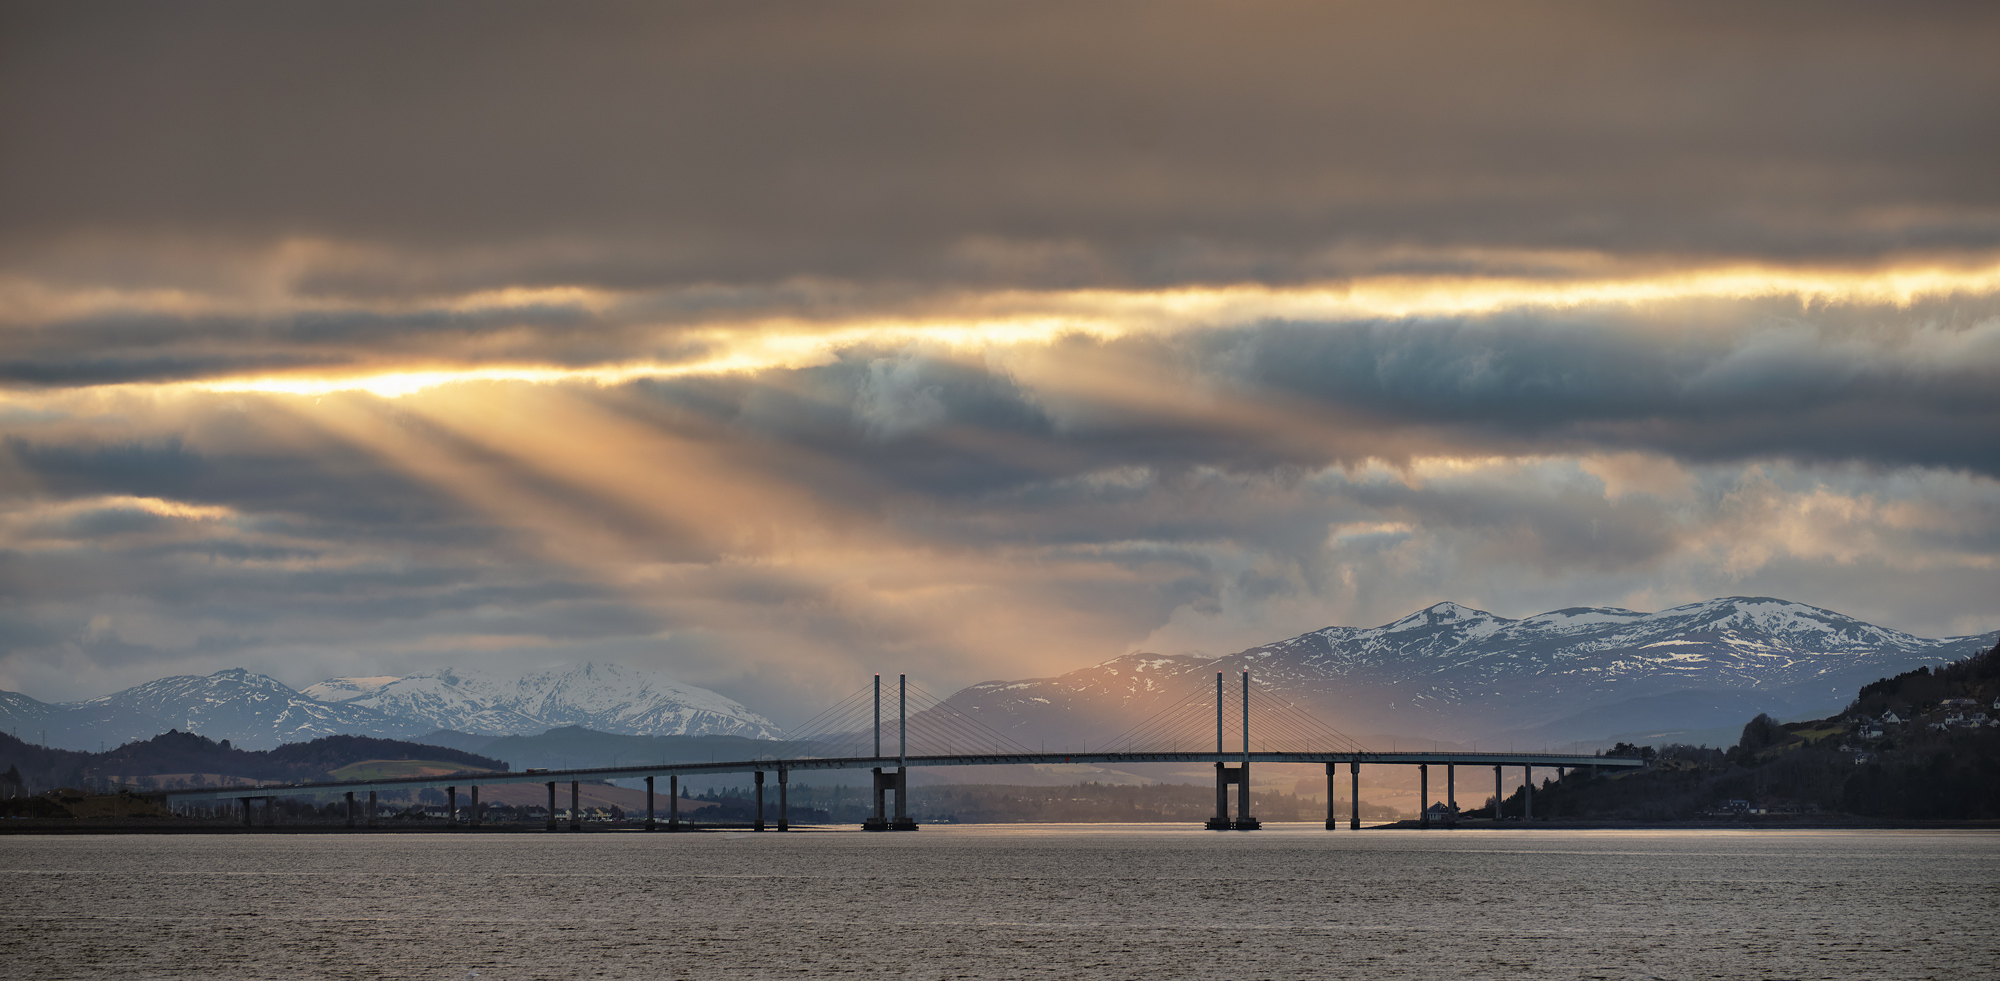 Despite the fact there are more dramatic shots taken on this gorgeous winter evening opposite The kessock Bridge and Inverness...